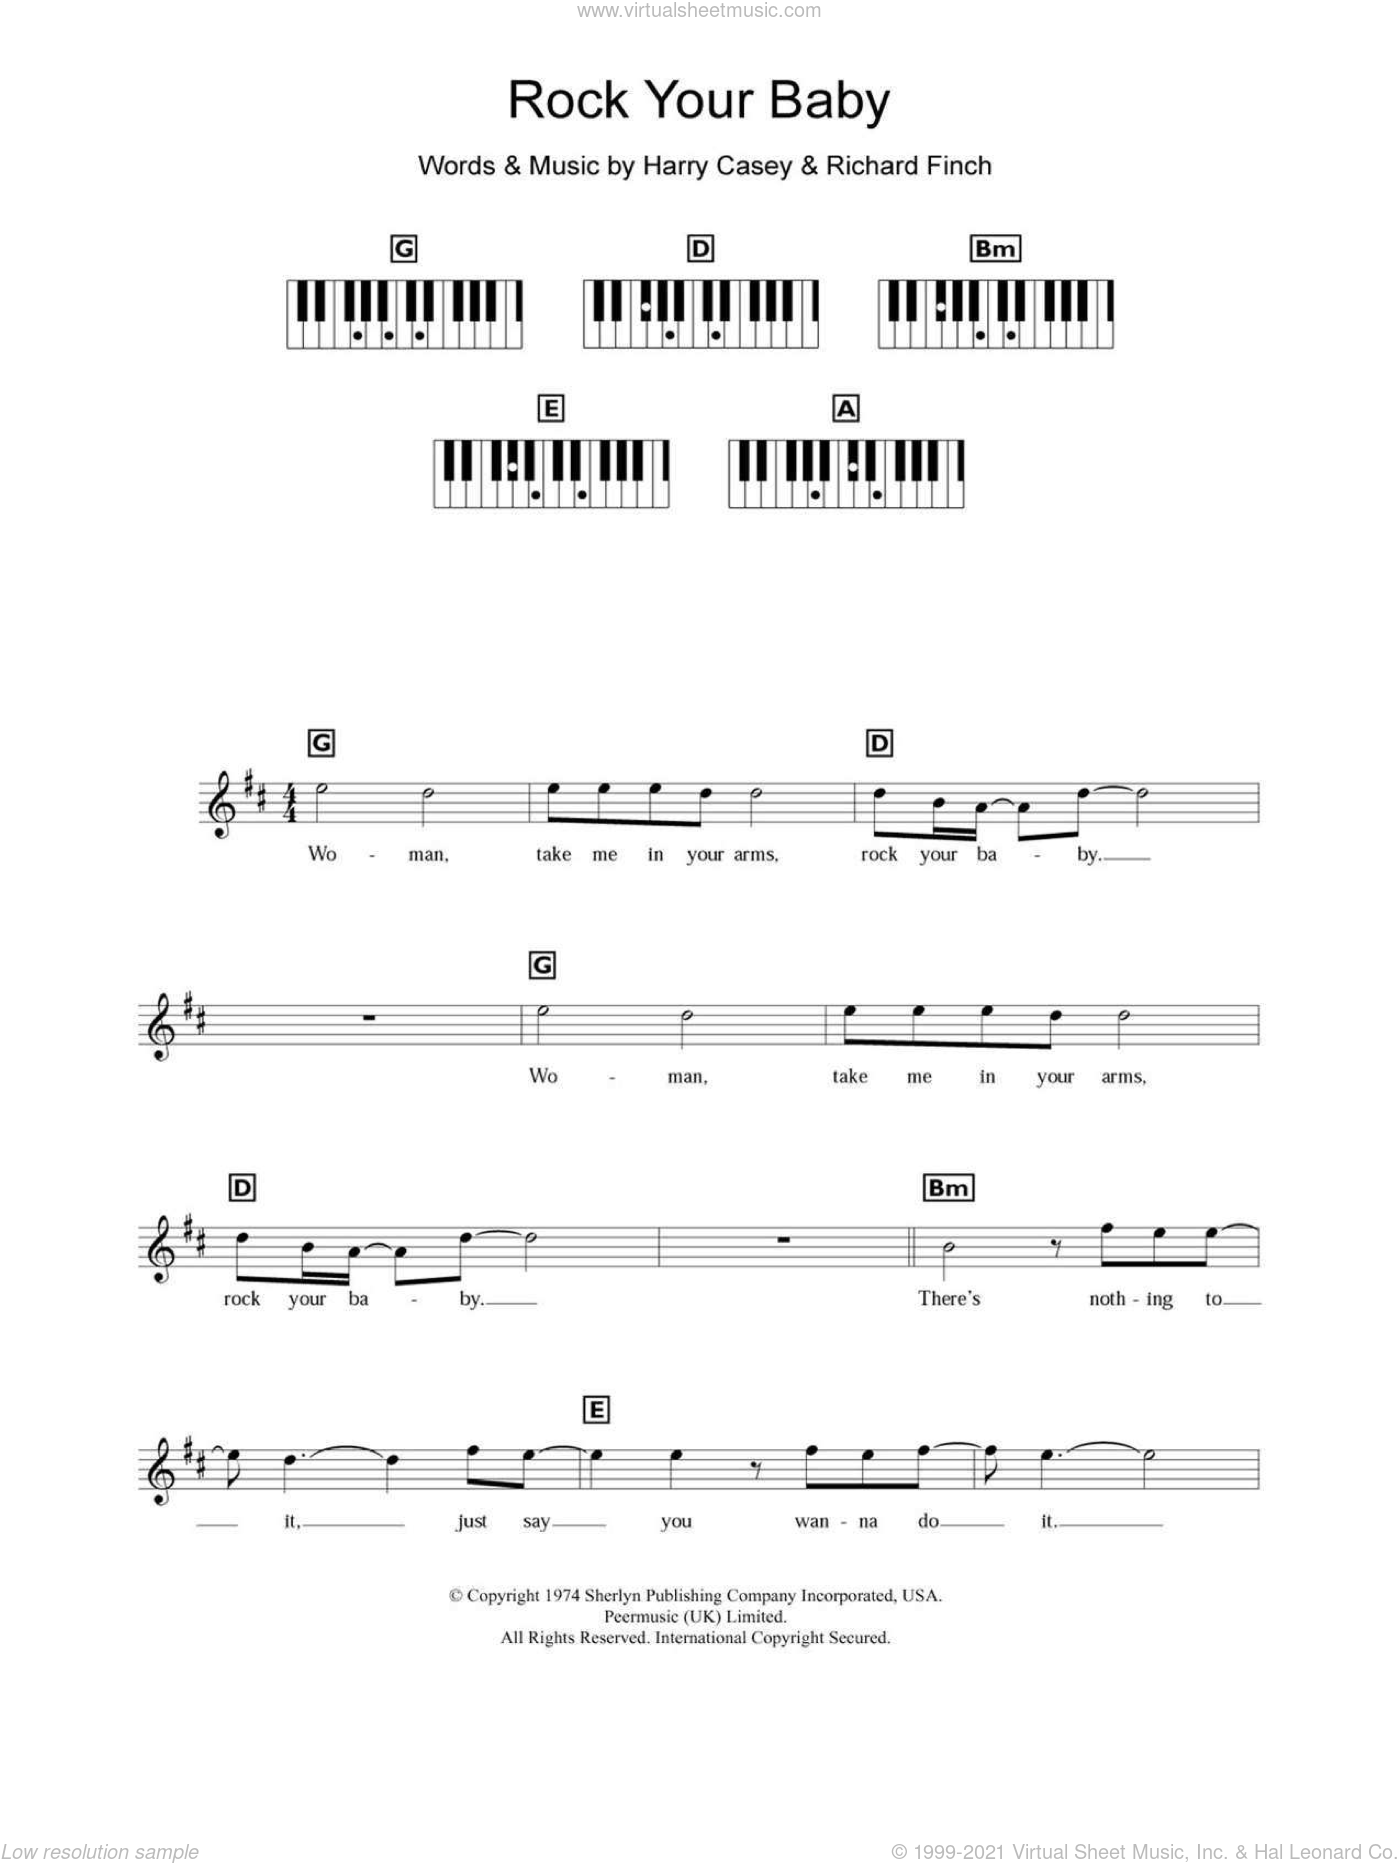 Rock Your Baby sheet music for piano solo (chords, lyrics, melody) by Richard Finch